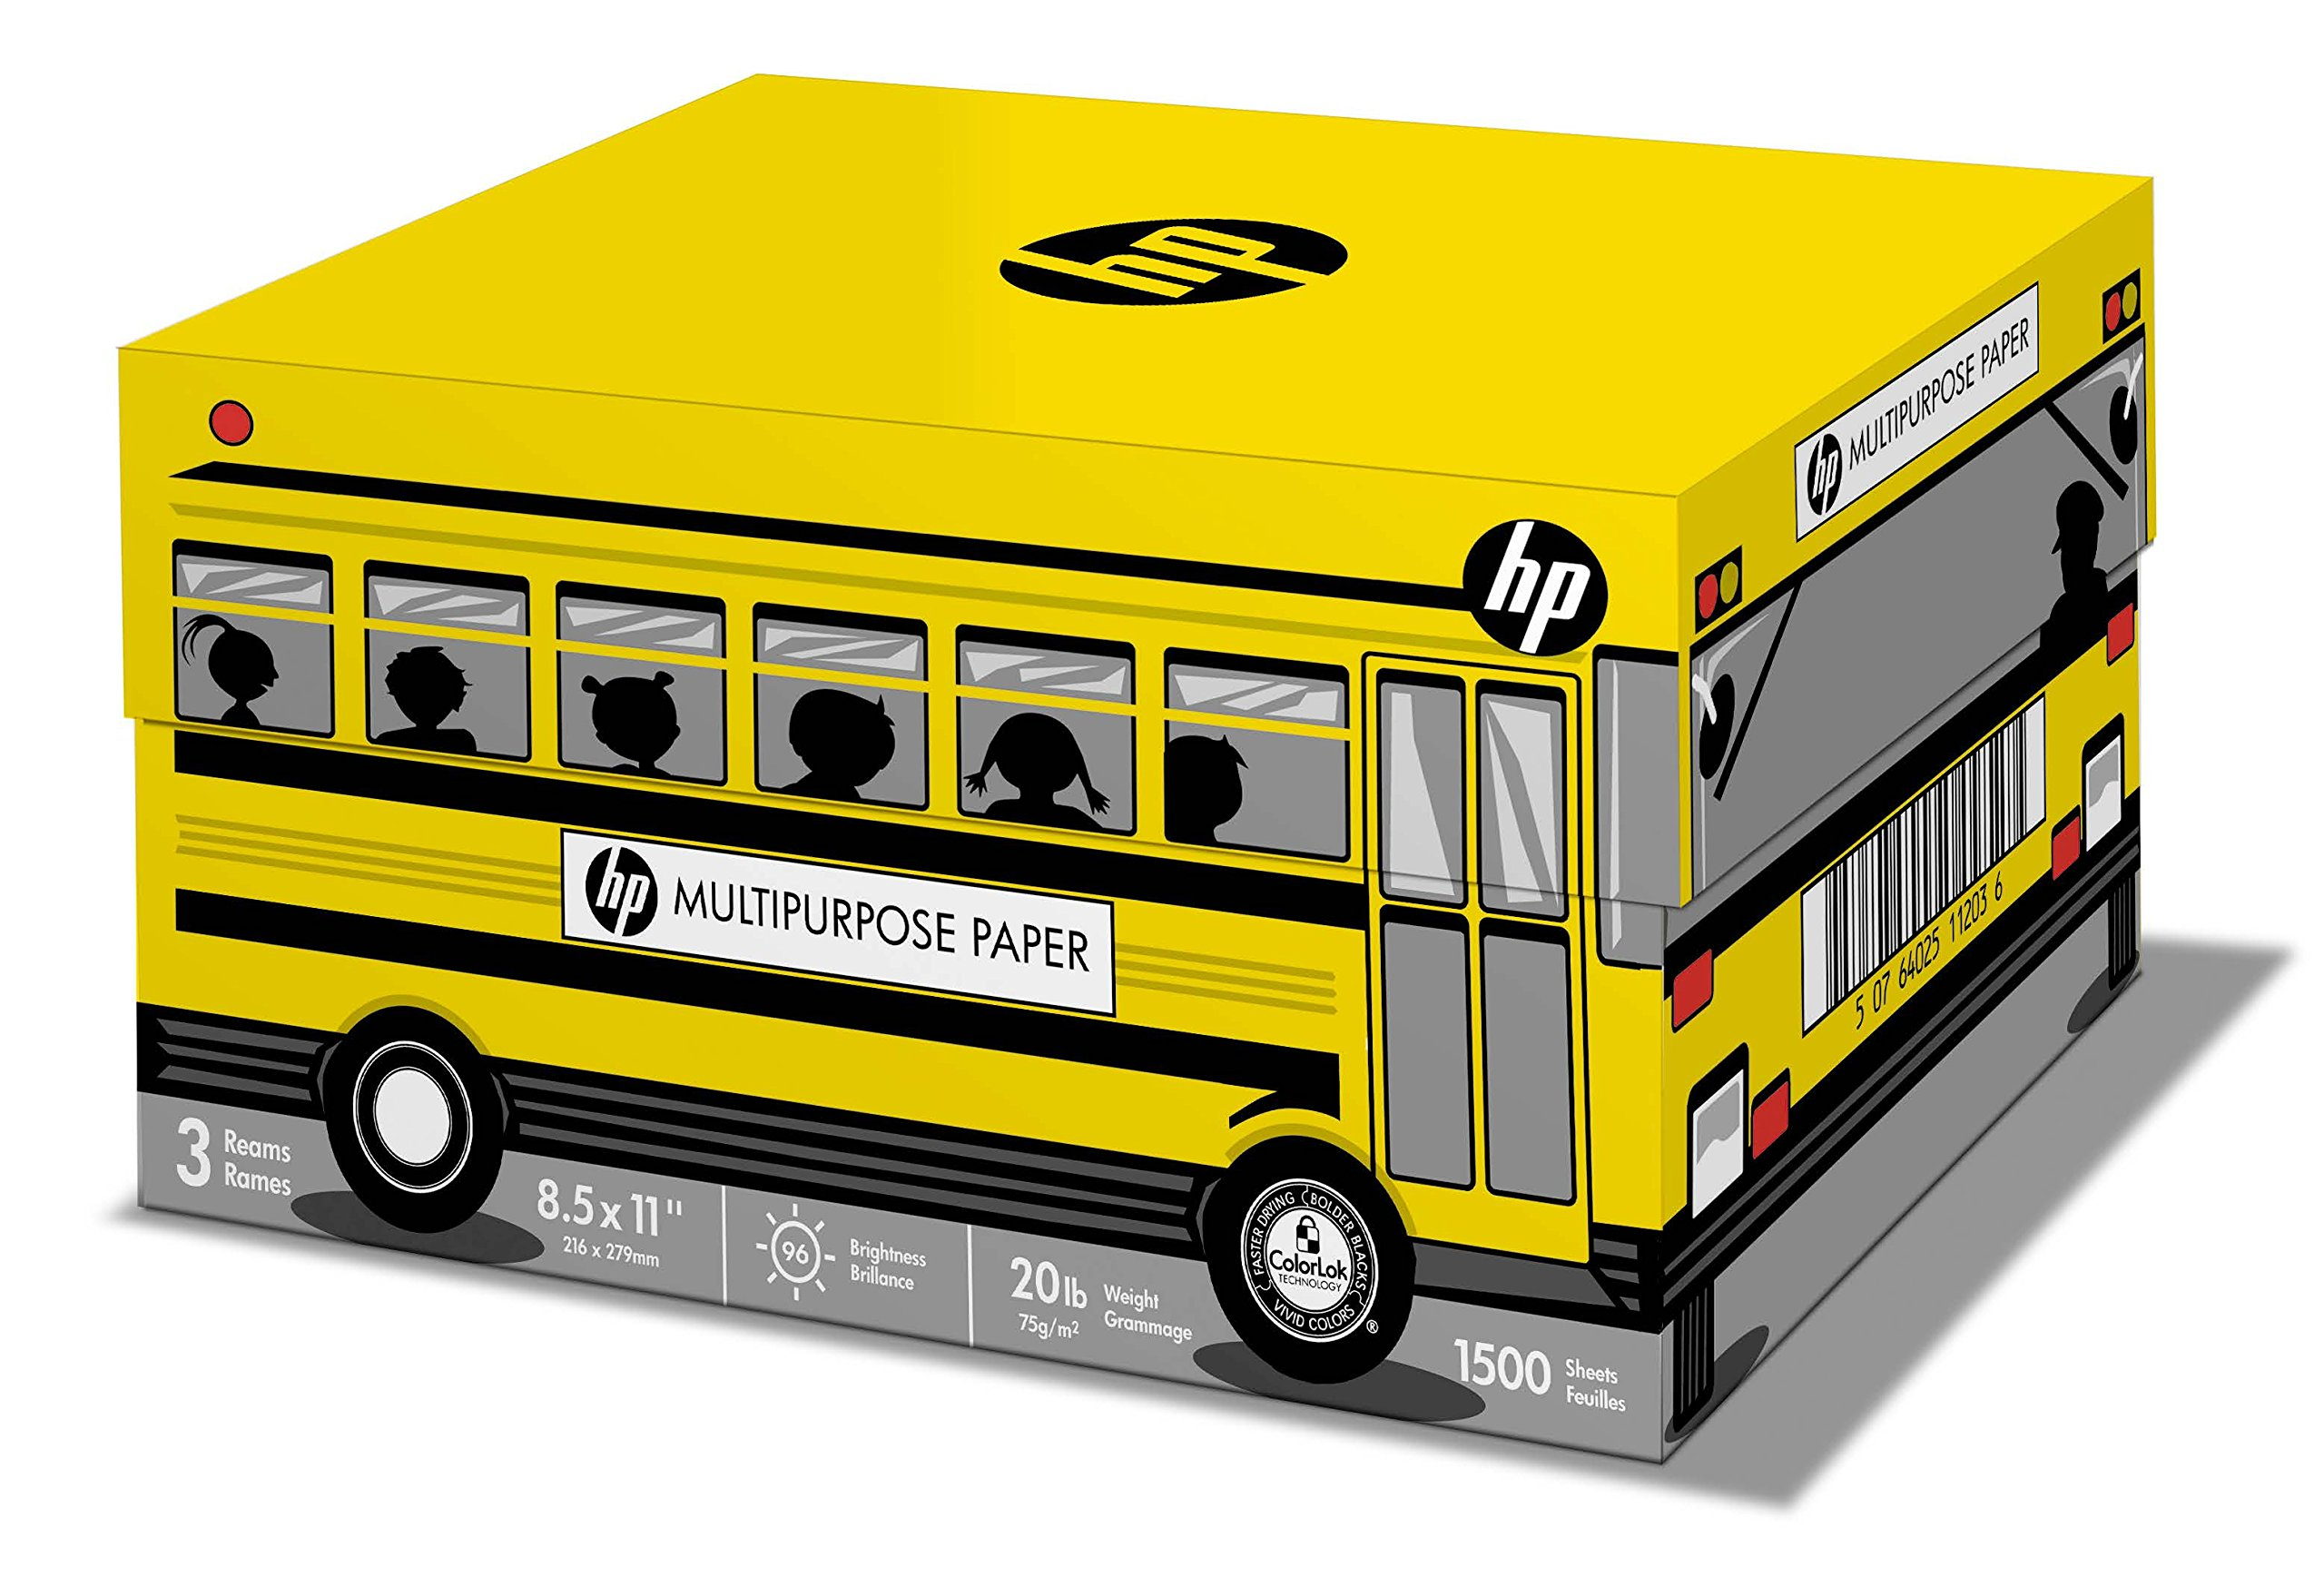 HP Printer Paper, Multipurpose20 School Bus, 8.5 x 11, Letter, 20lb, 96 Bright, 1,500 Sheets / 3 Ream Carton (112030C) Made In The USA